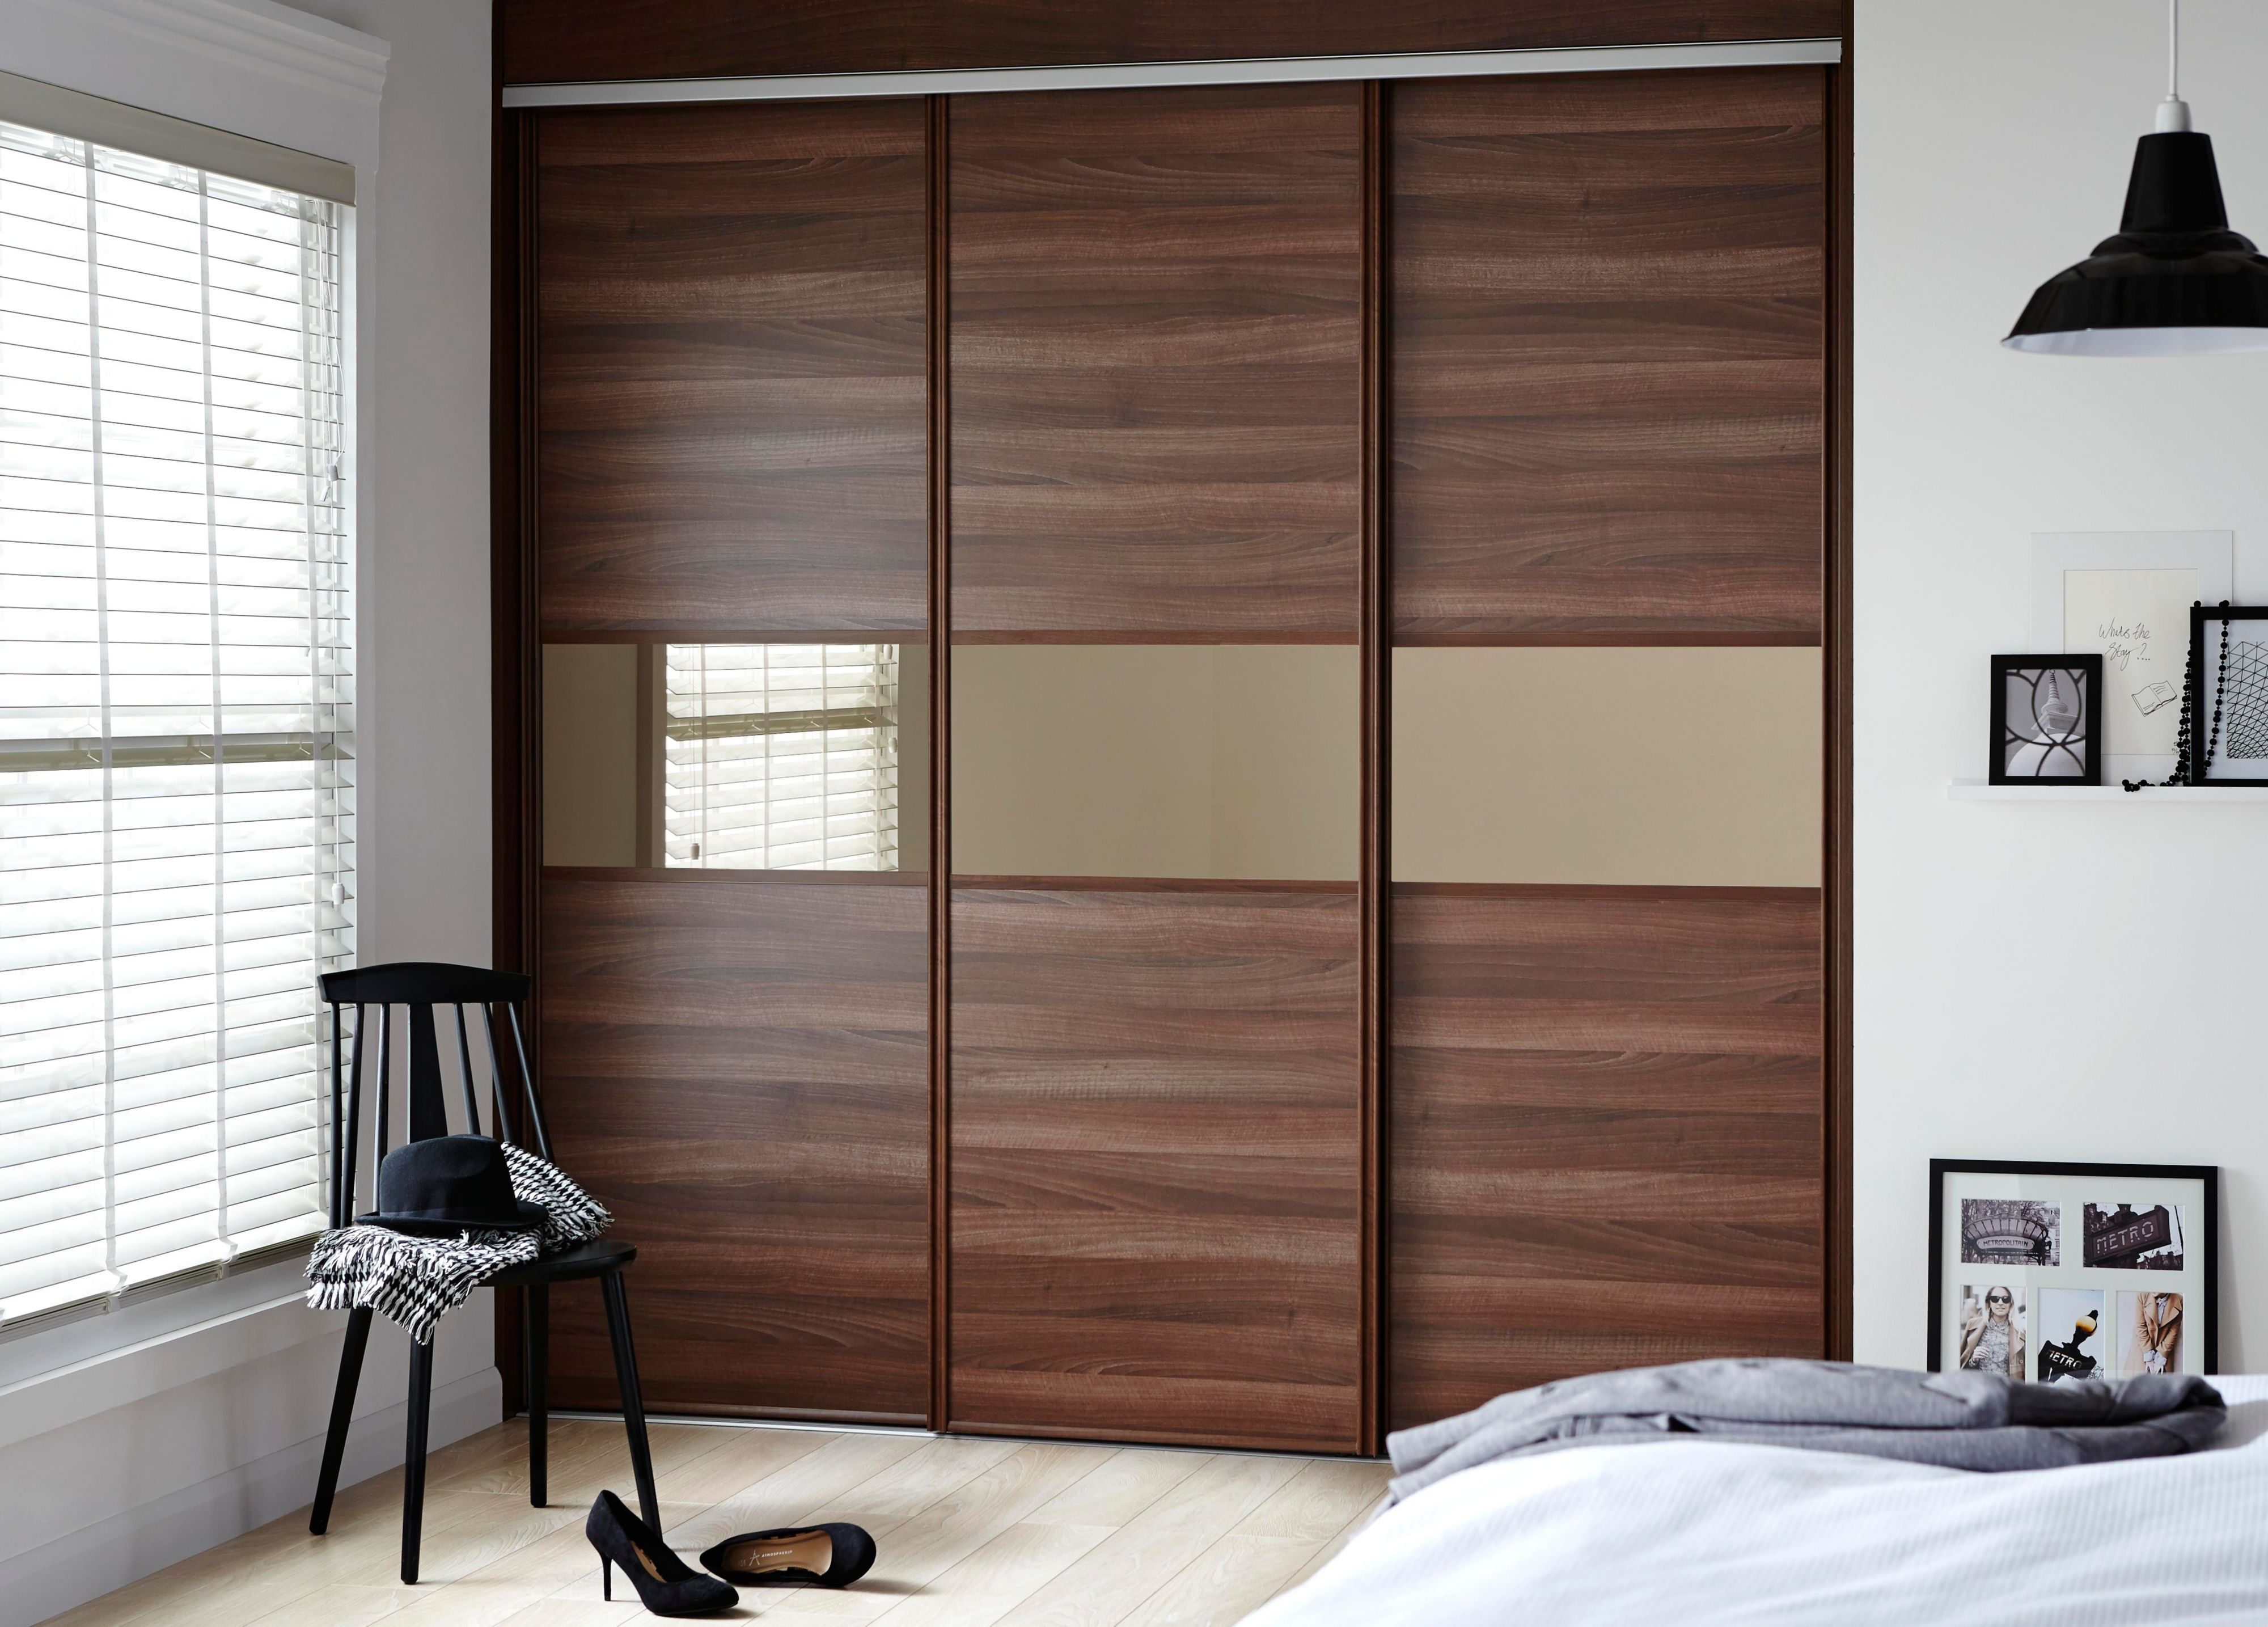 Wardrobe with sliding doors 1. add a beautiful look to your bedroom: MFADRNT